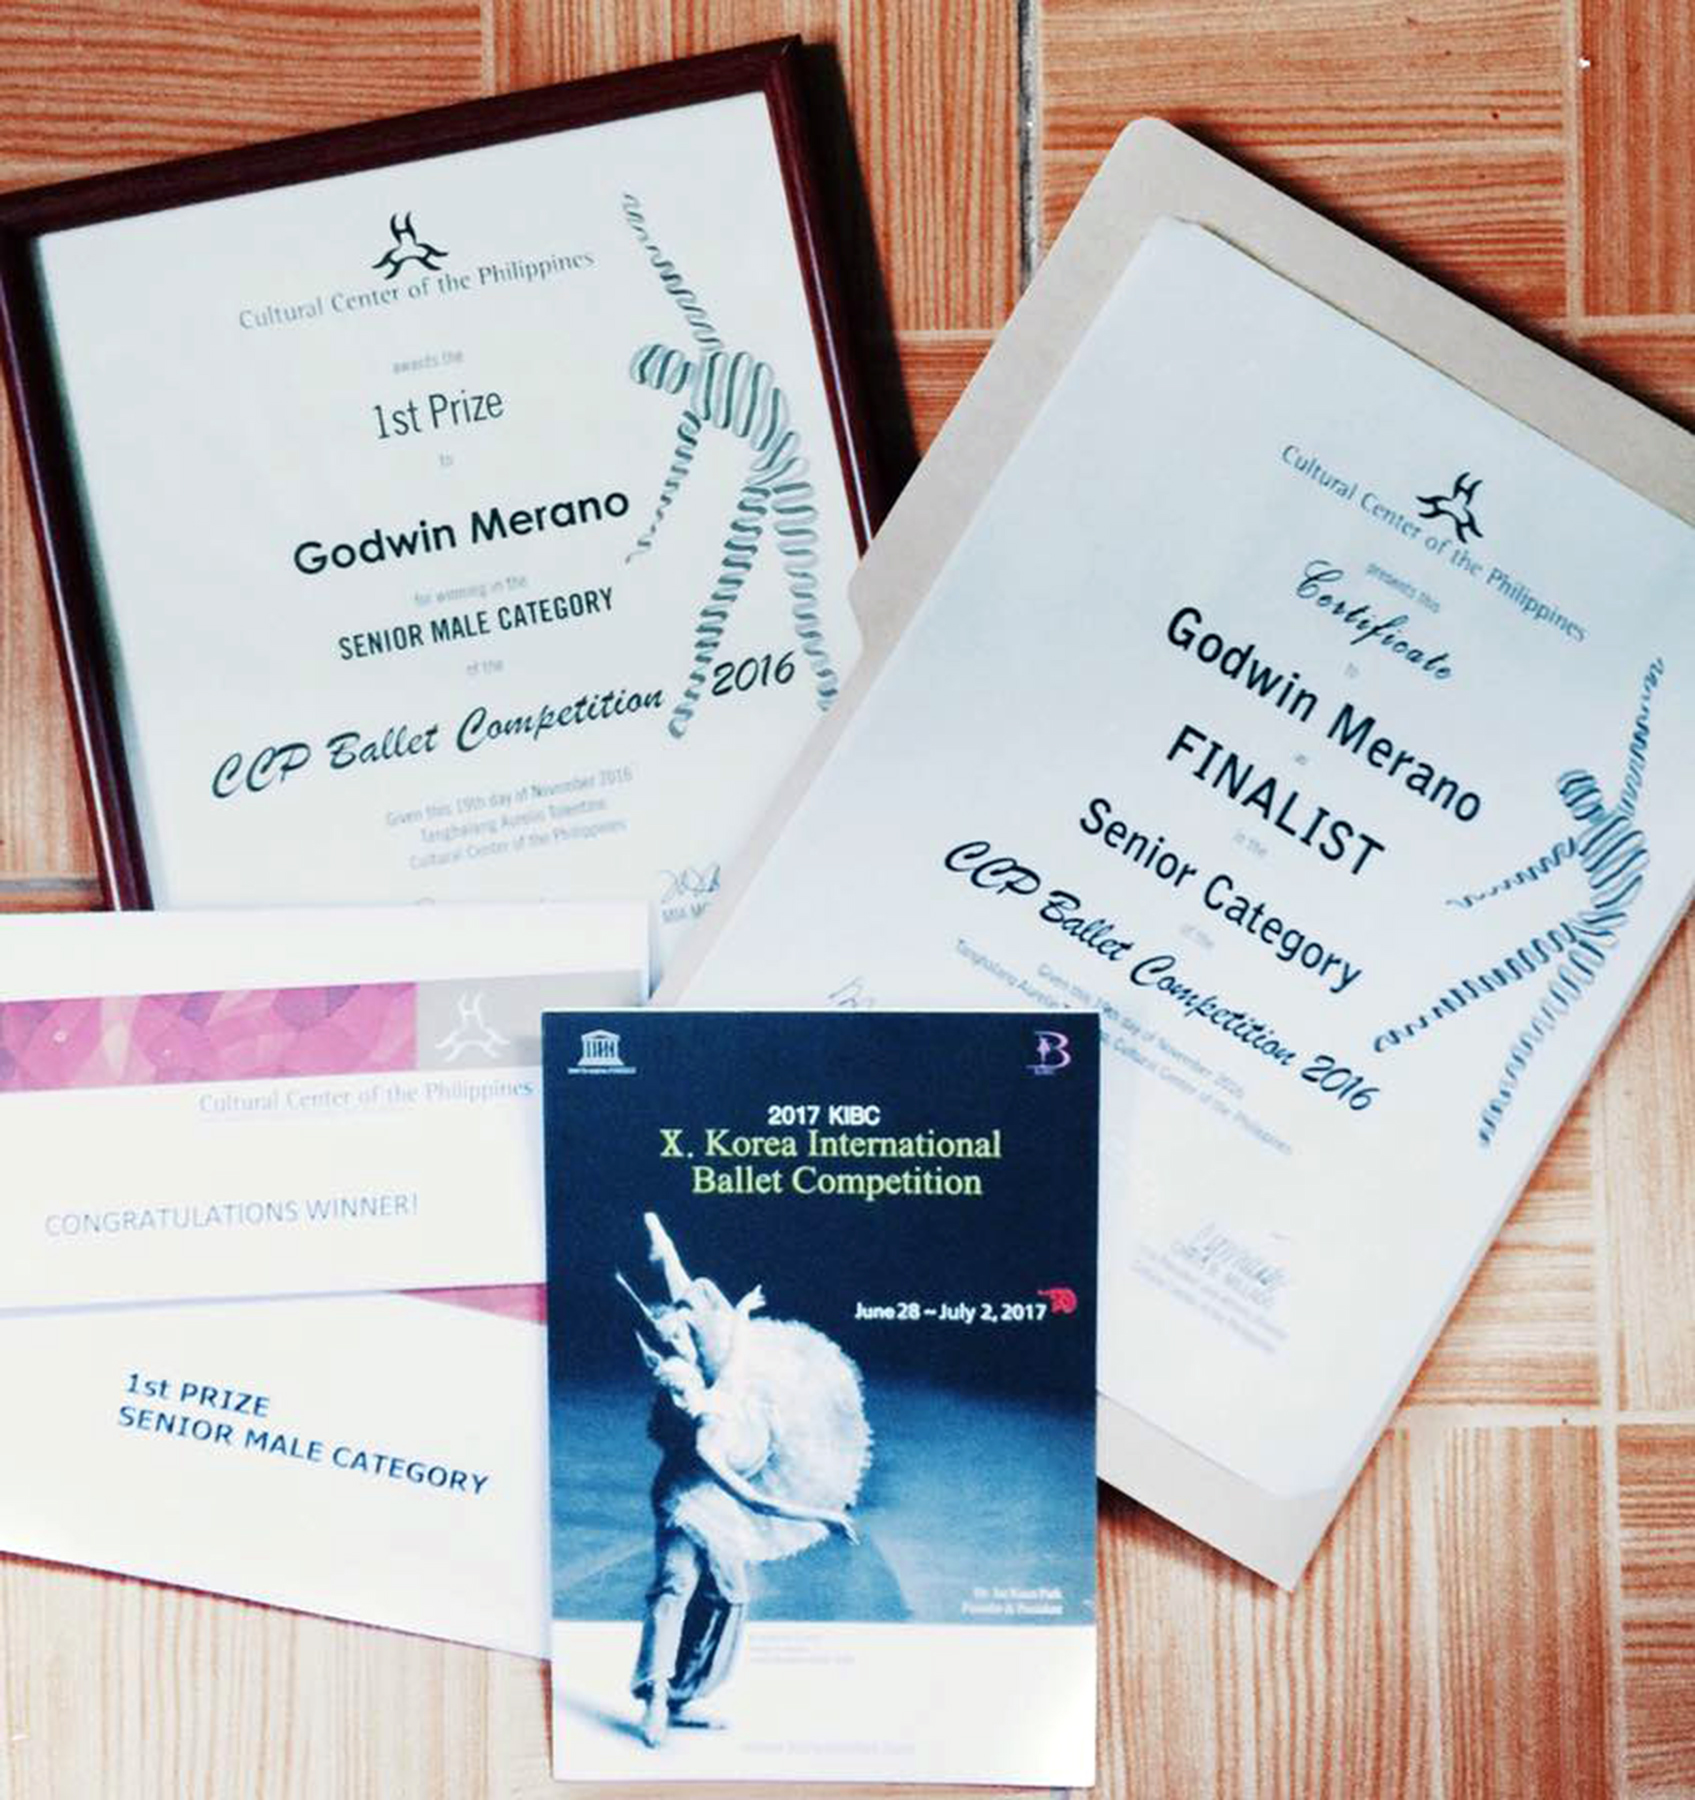 A photo of Godwin's certificates from the CCP competition which he posted on Facebook, a day after his victory. Photo from Godwin Merano's Facebook page